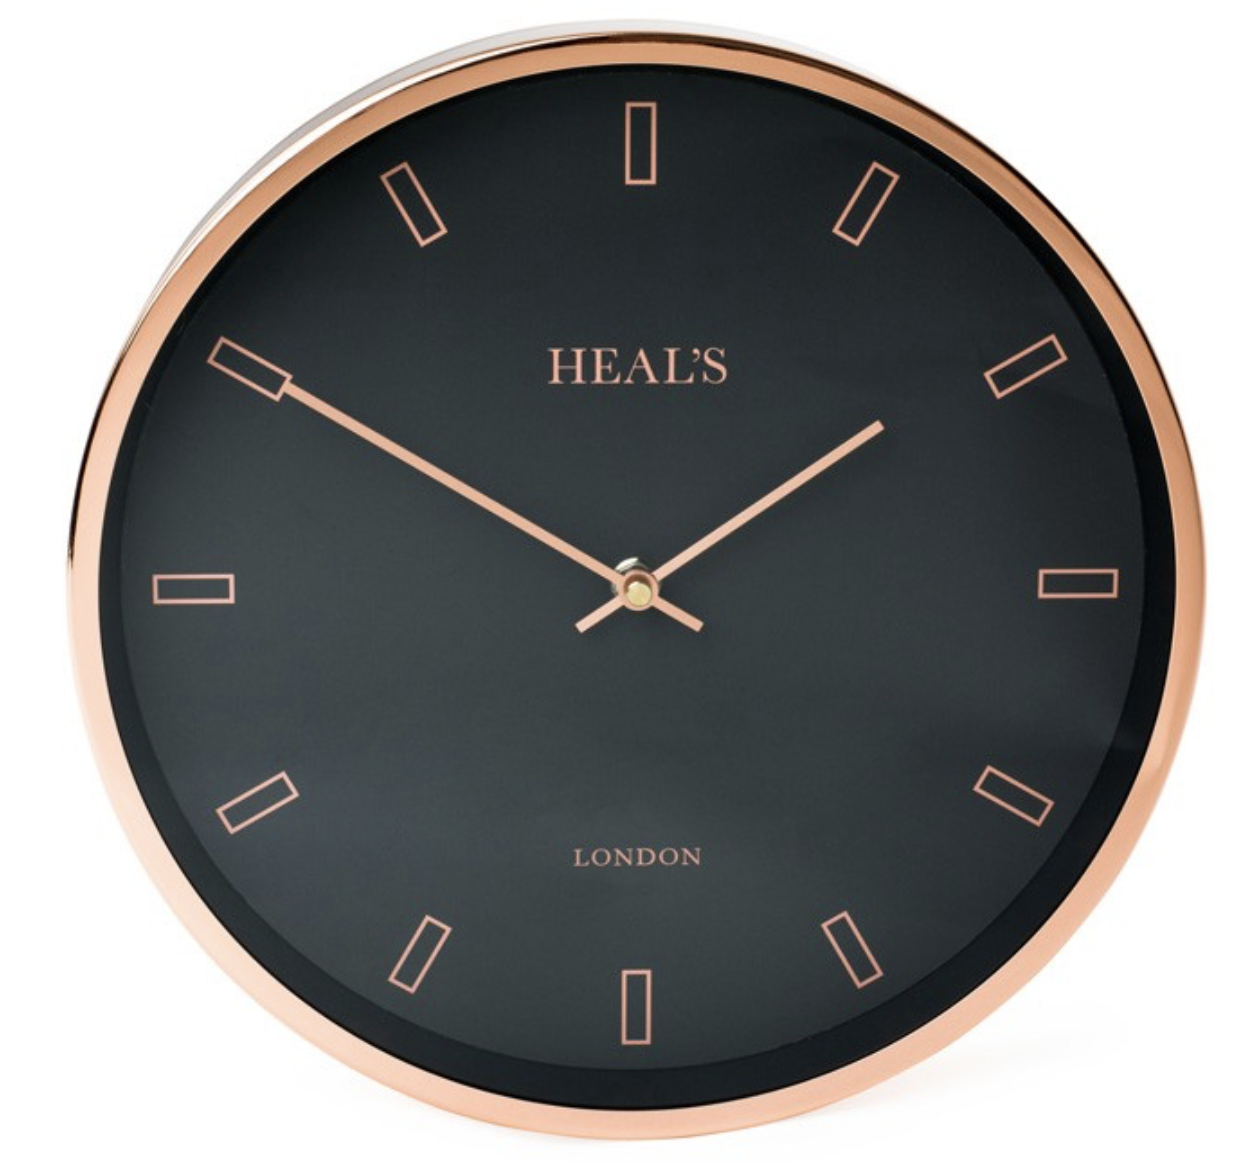 Heal's Black & Copper Wall Clock - This clock is inspired by an original 50's Smith's of London design. The clock features a copper finish case & black face paper with matching copper hands. Simplistic smart design.£49 at Heal's